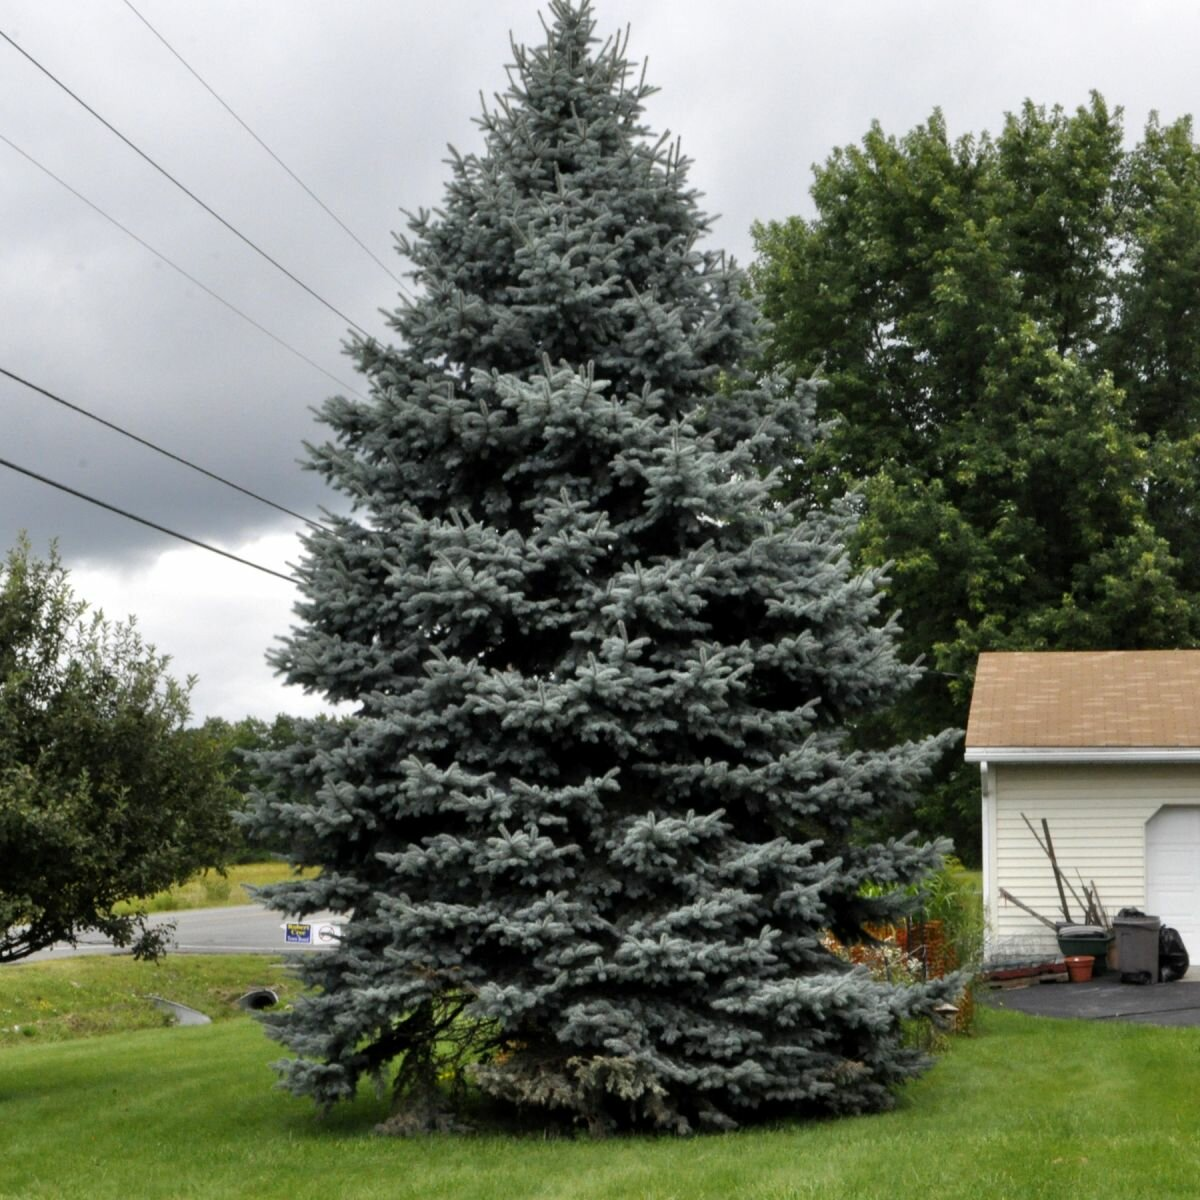 Colorado Blue Spruce Fact: The blue Colorado spruce tree's new growth in the Spring produces the bluest needles. Over the summer and winter seasons the newest needles will lose some of their brilliant blue .